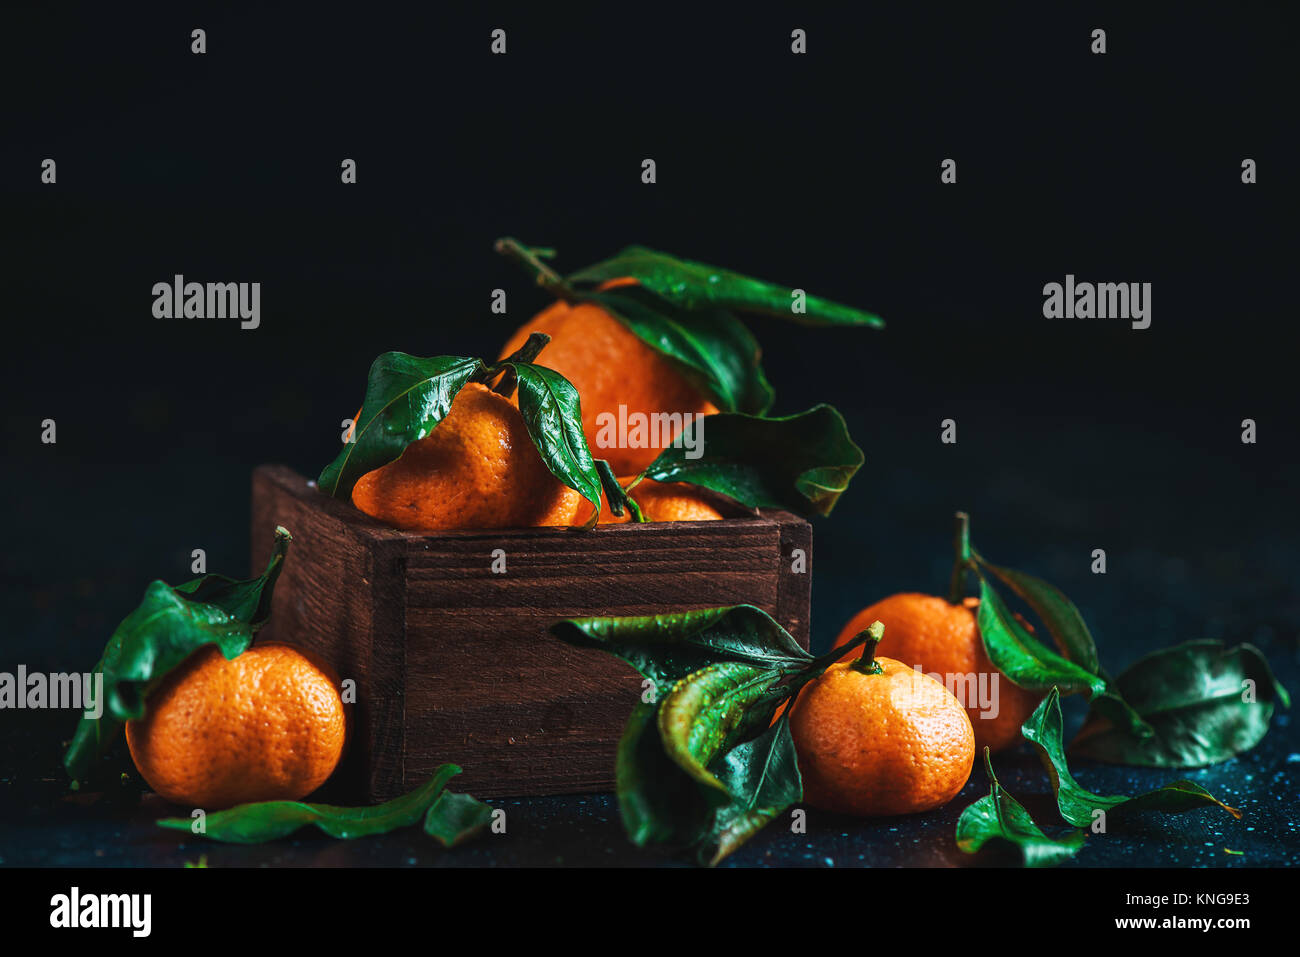 Tangerines in a wooden box on a dark wooden background. Vibrant ripe fruit concept. Dark food photography. - Stock Image